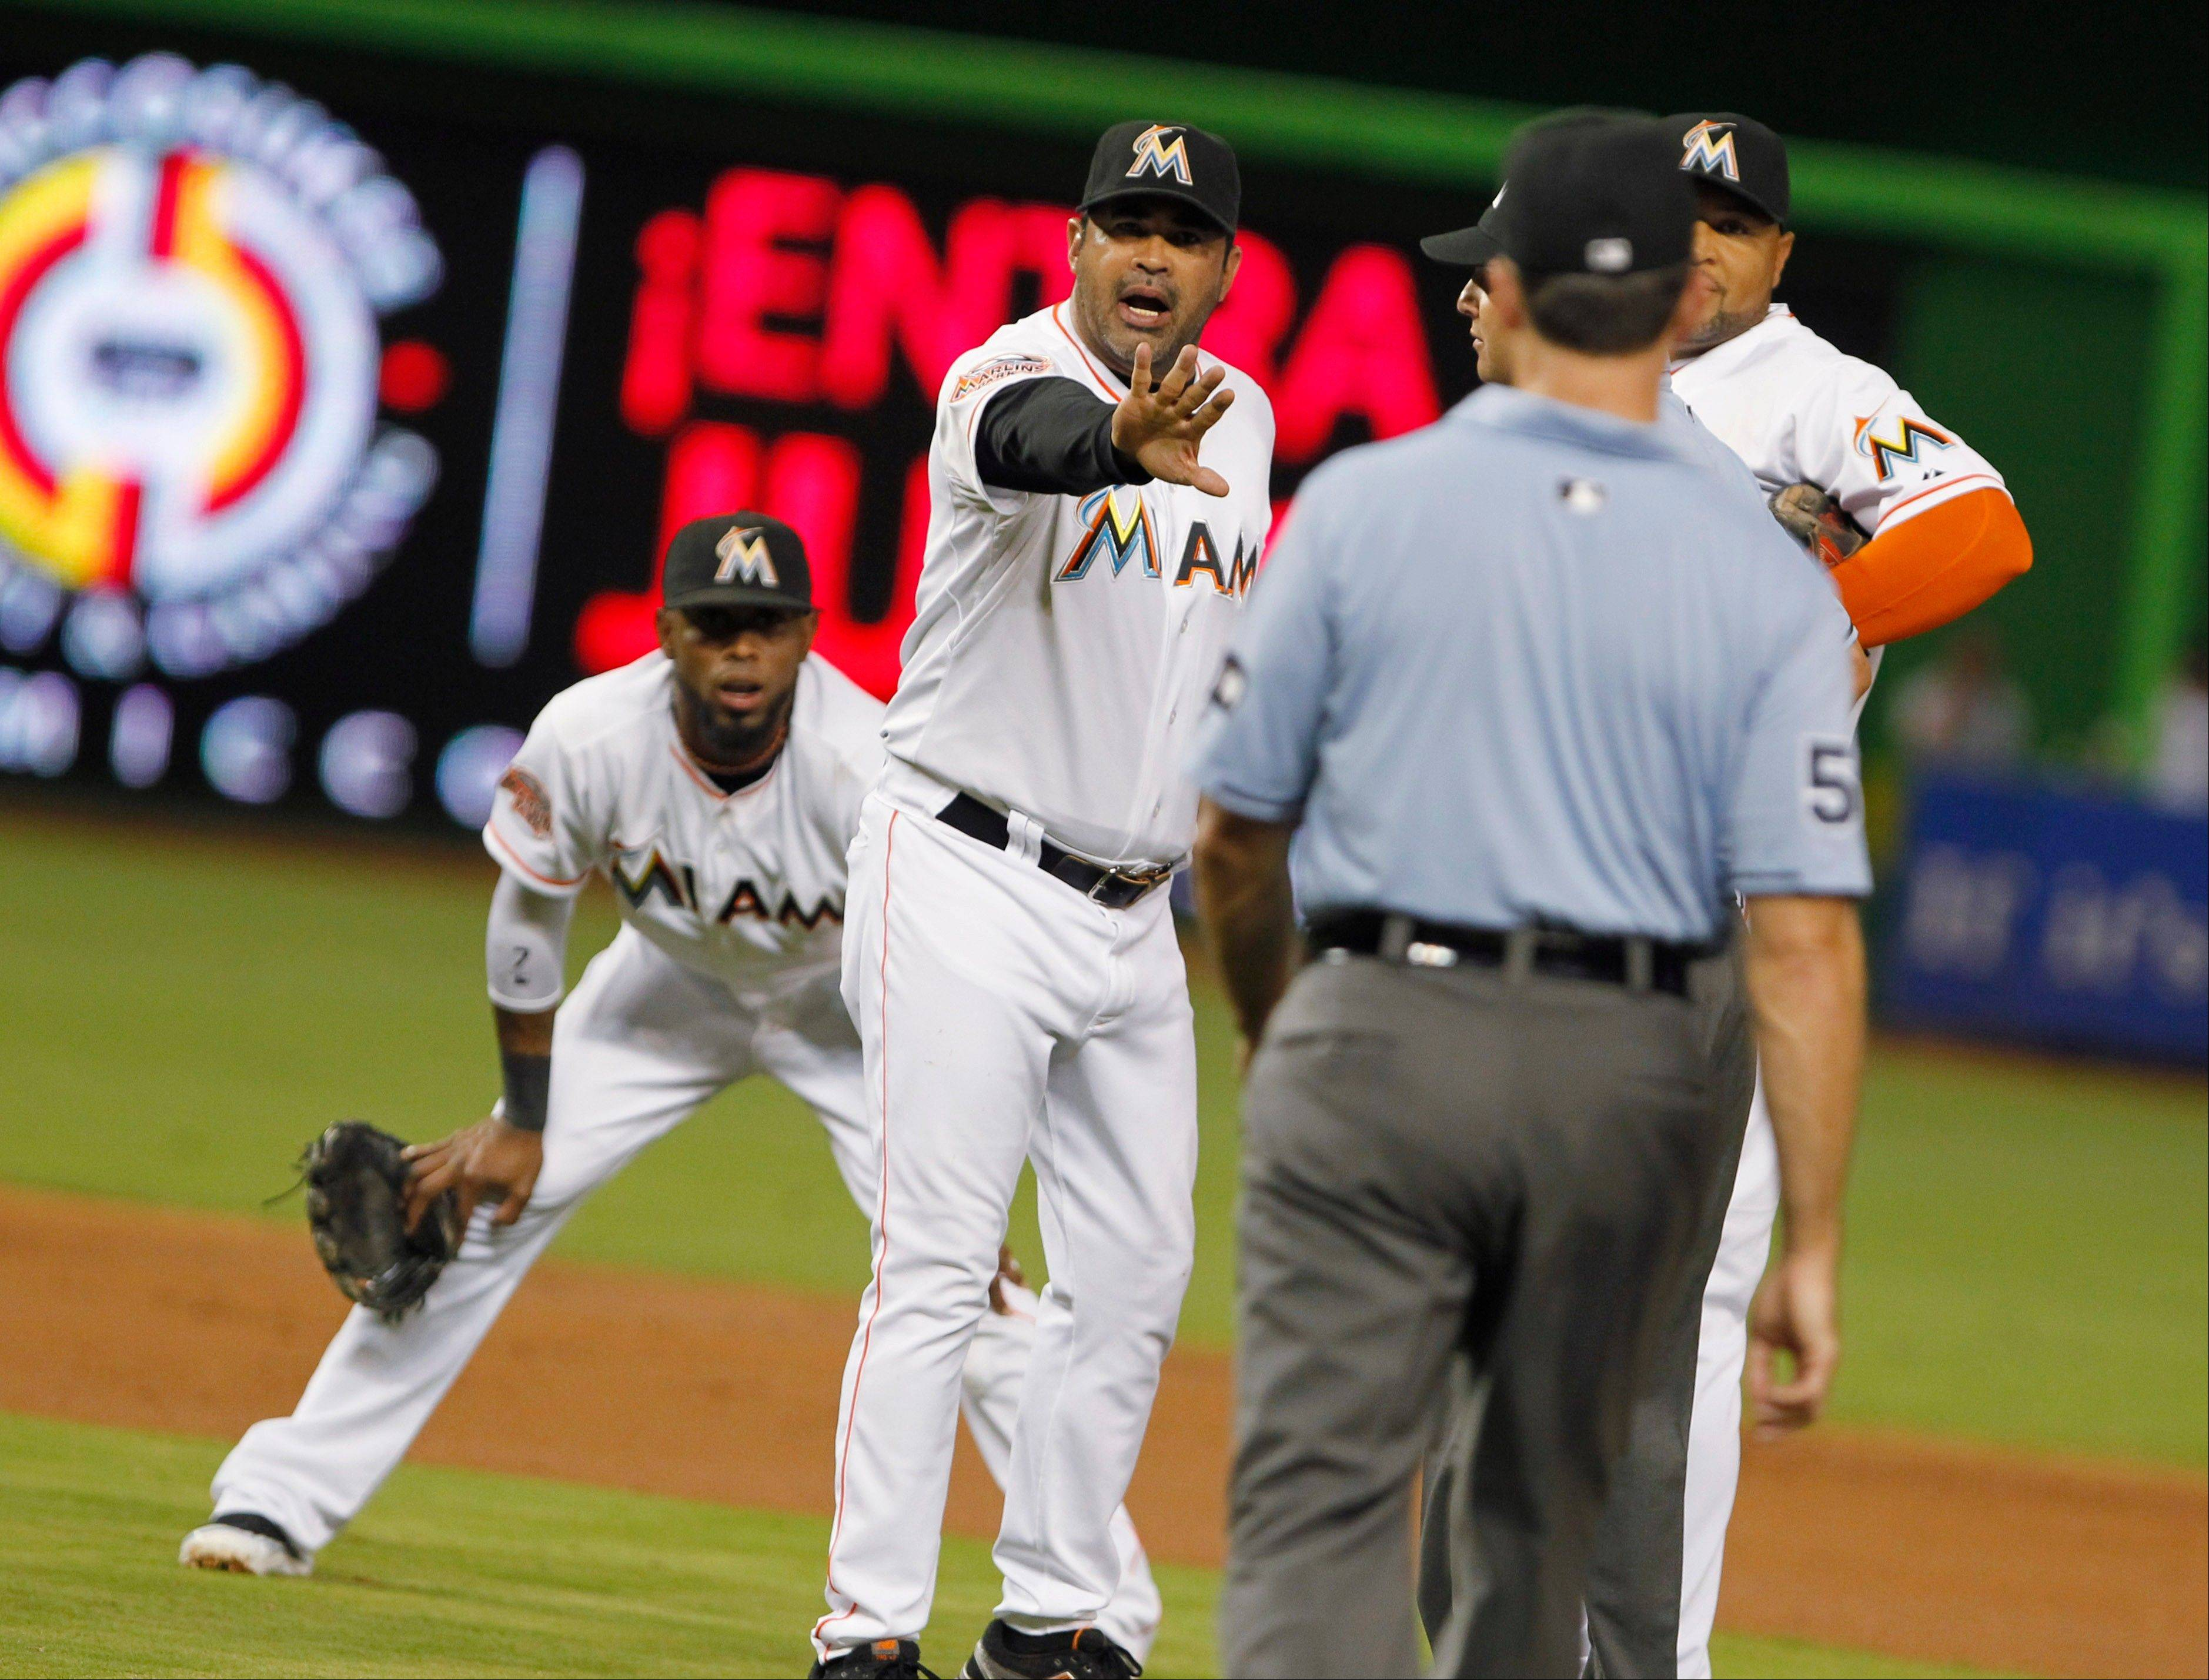 Marlins manager Ozzie Guillen, second from left, argues a call with an official during a game against the Atlanta Braves on Tuesday in Miami. Mindful of speculation his job might be in jeopardy, Guillen says he's glad he rented a house in Miami rather than buying when he took the job.